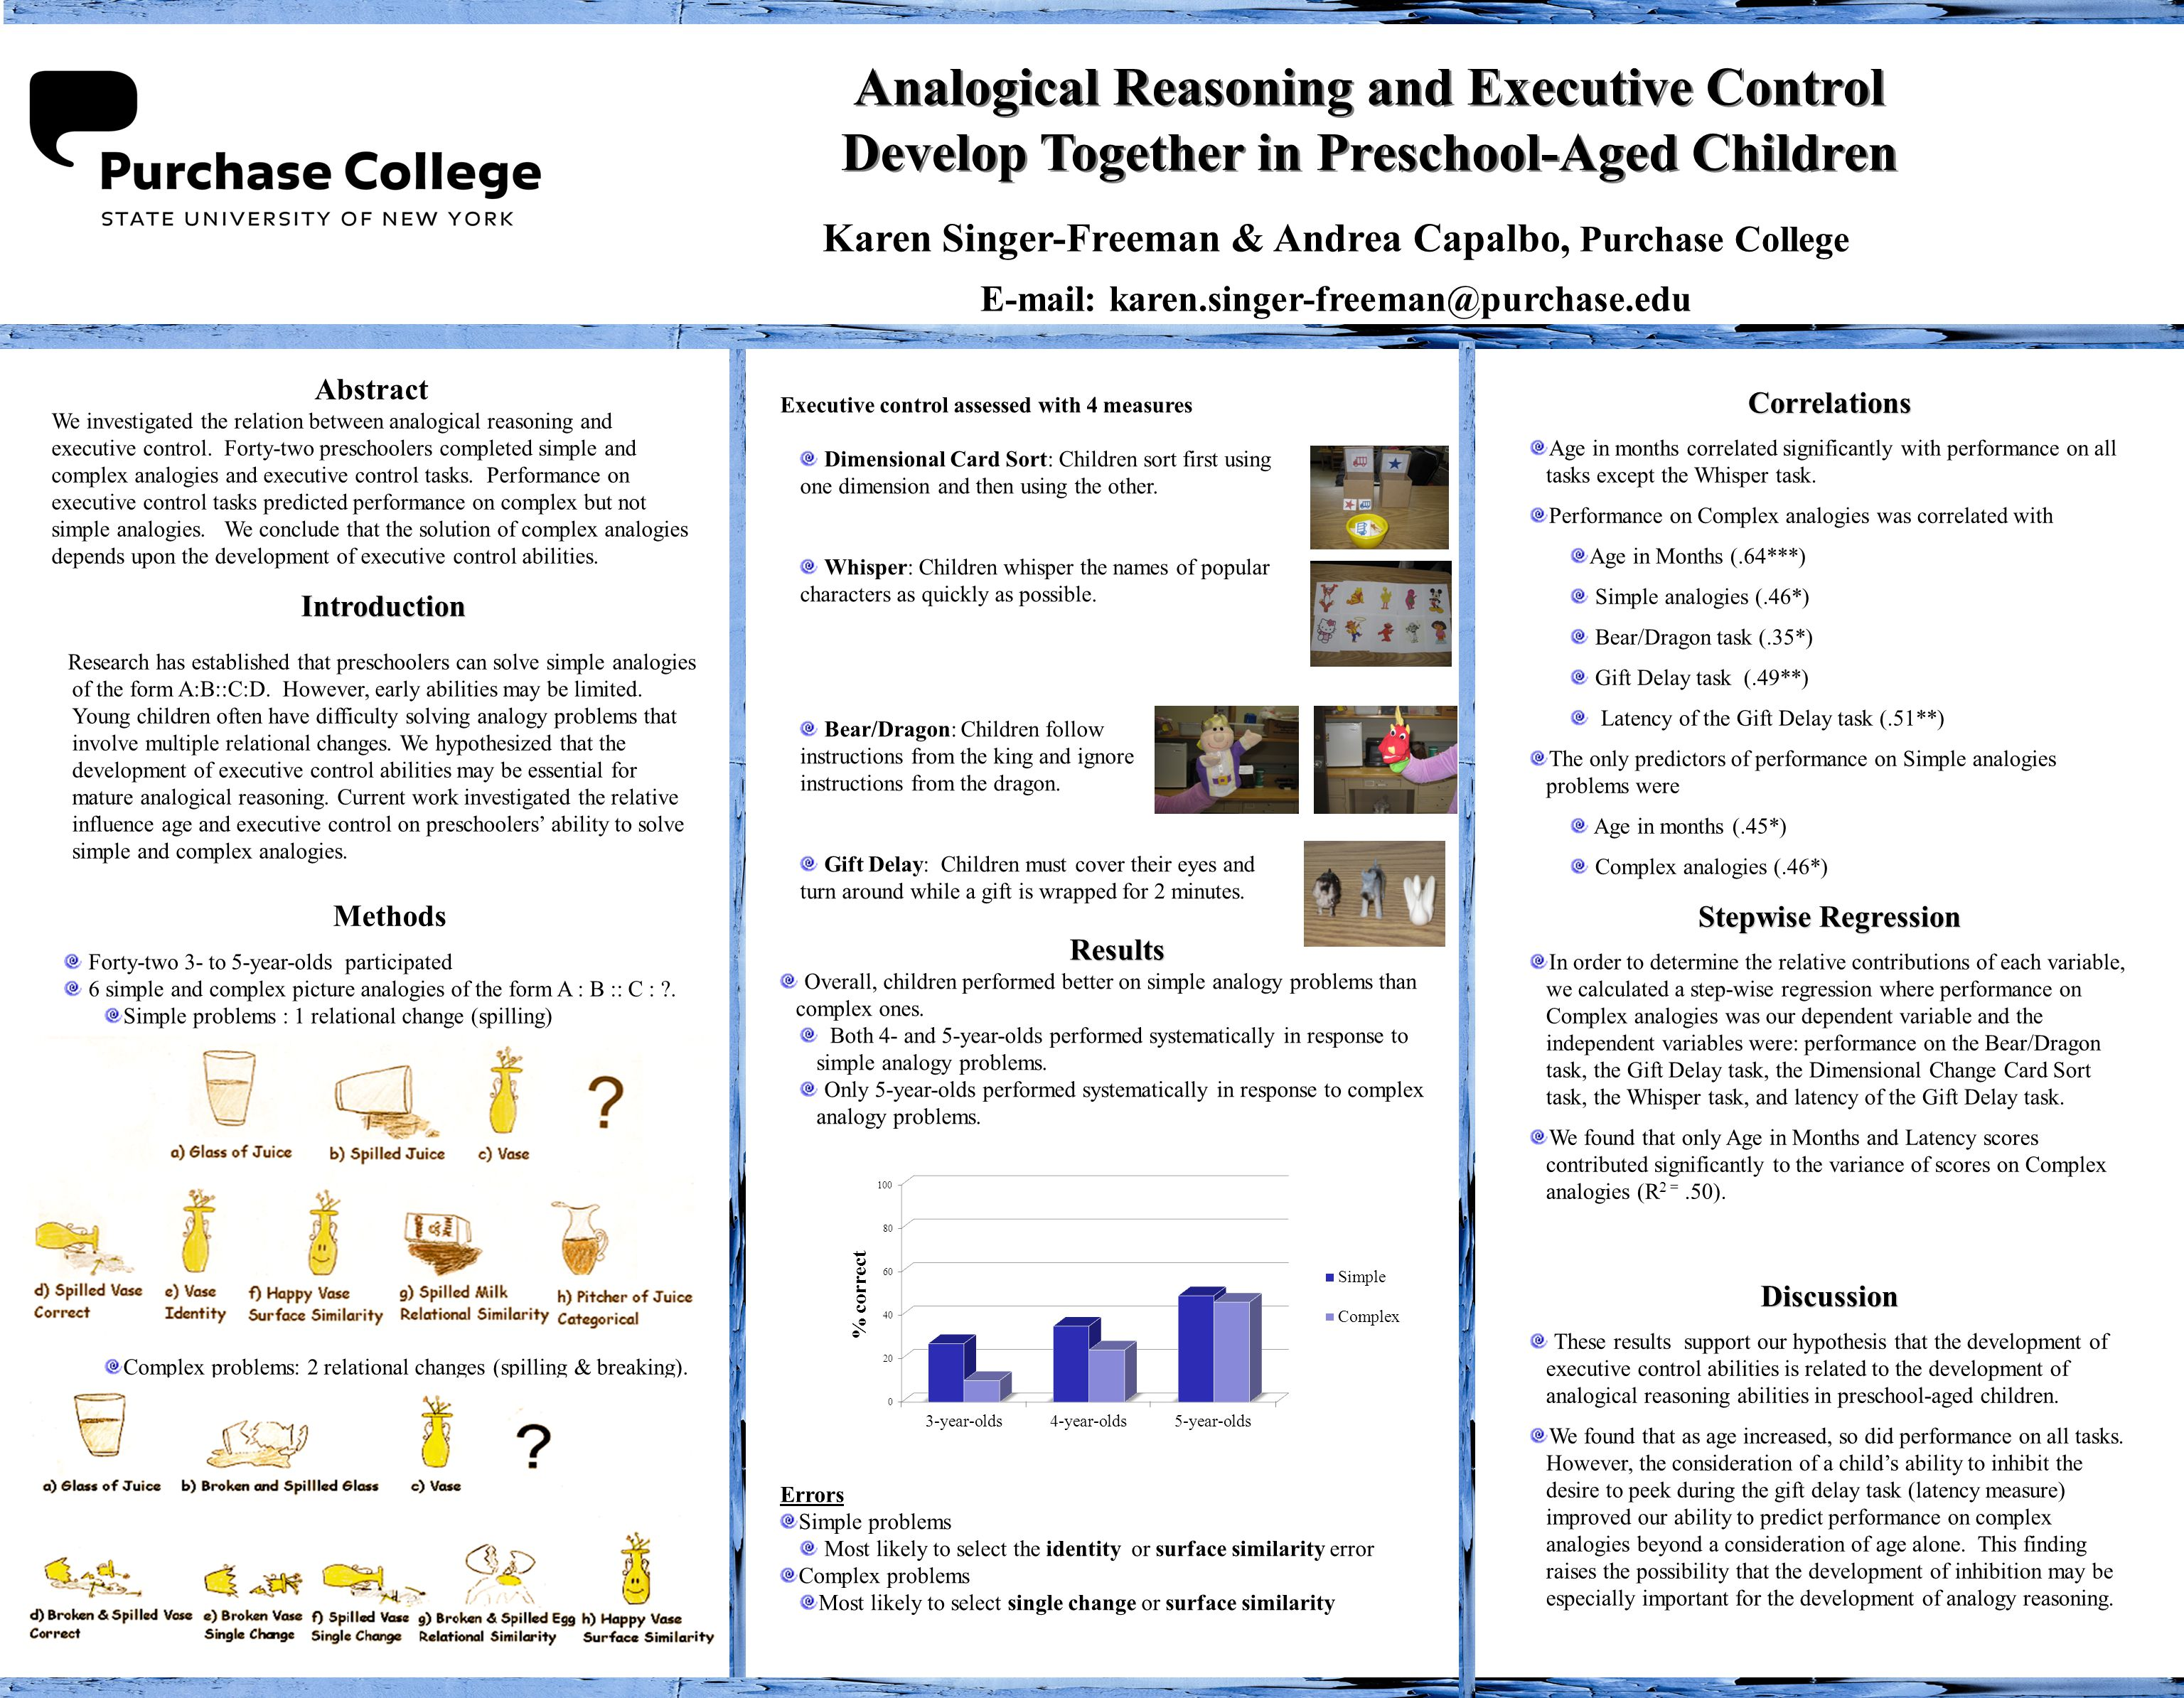 Analogical Reasoning and Executive Control Develop Together in Preschool-Aged Children Analogical Reasoning and Executive Control Develop Together in Preschool-Aged Children Abstract We investigated the relation between analogical reasoning and executive control.